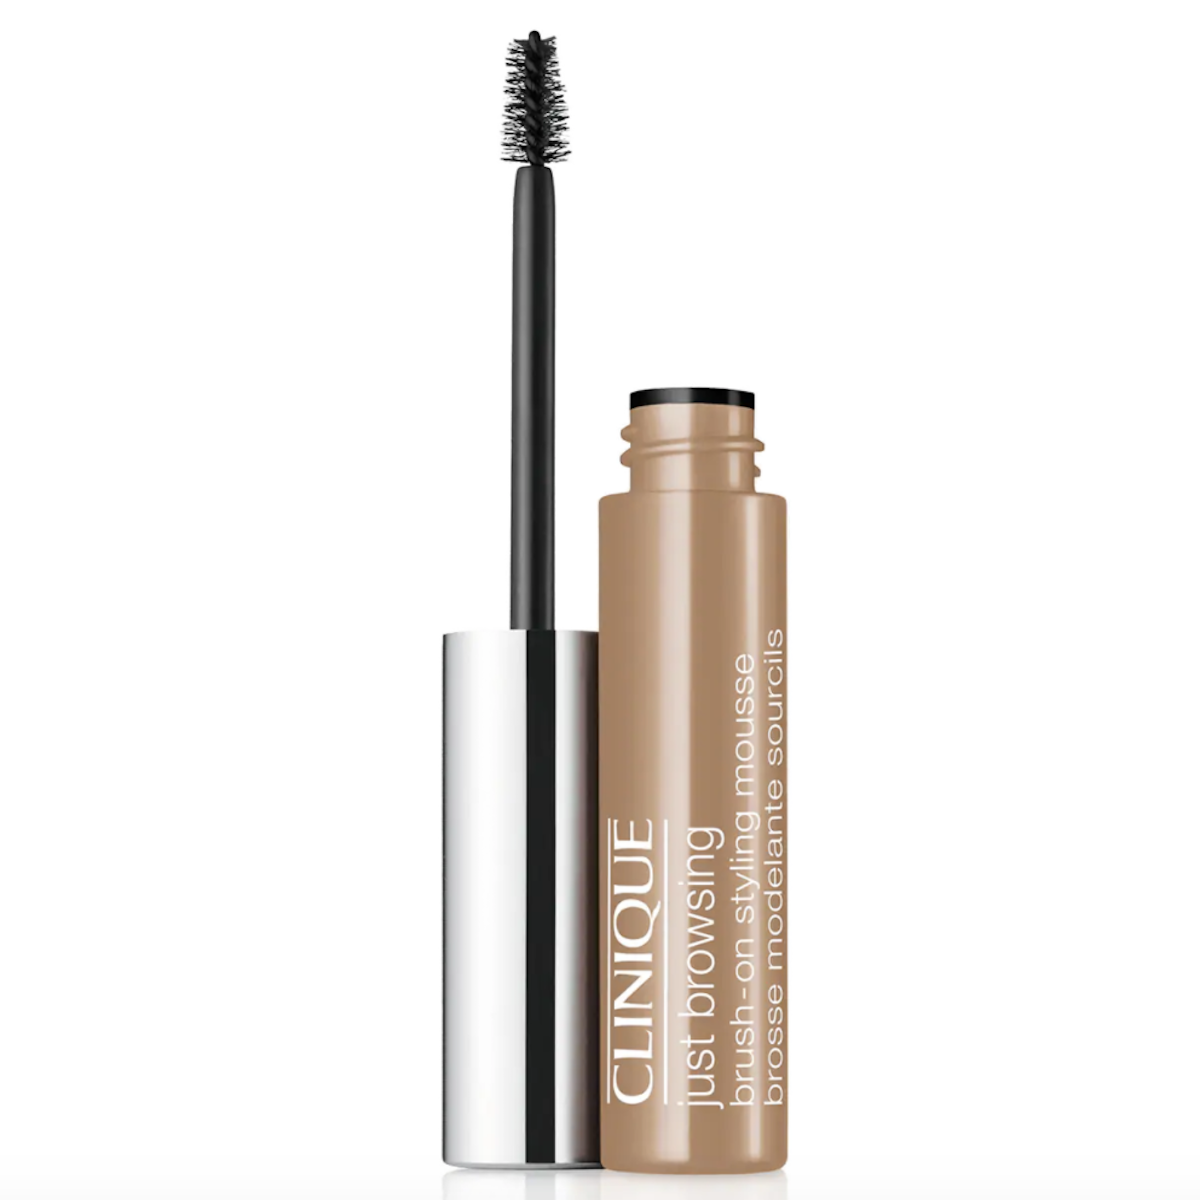 Clinique Just Browsing Brush-on Styling Mousse Wand